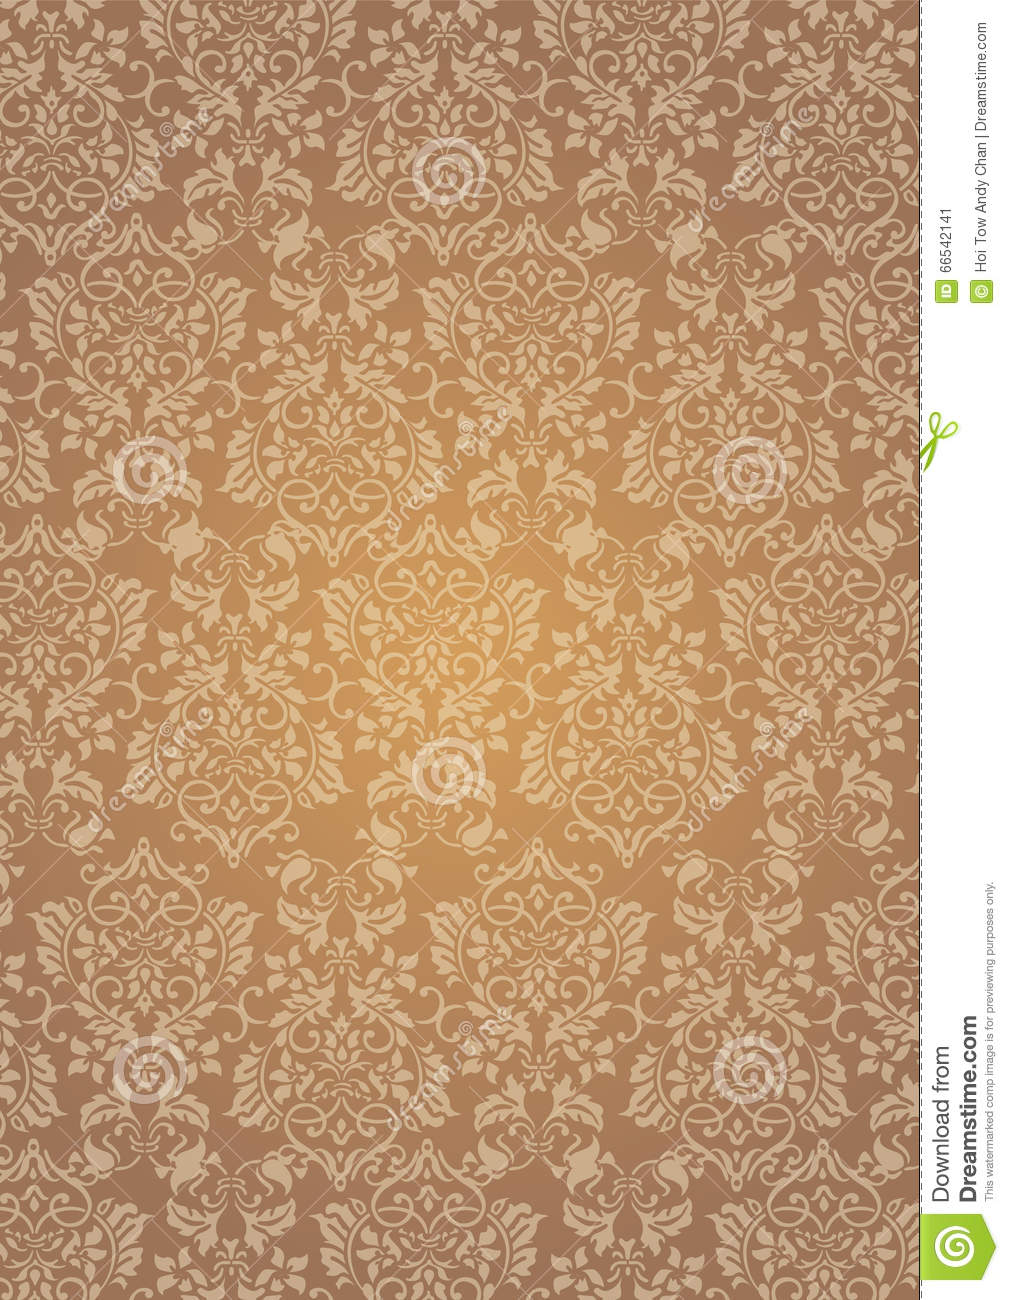 Elegant Brown Flowers Pattern Textured Wallpaper Background